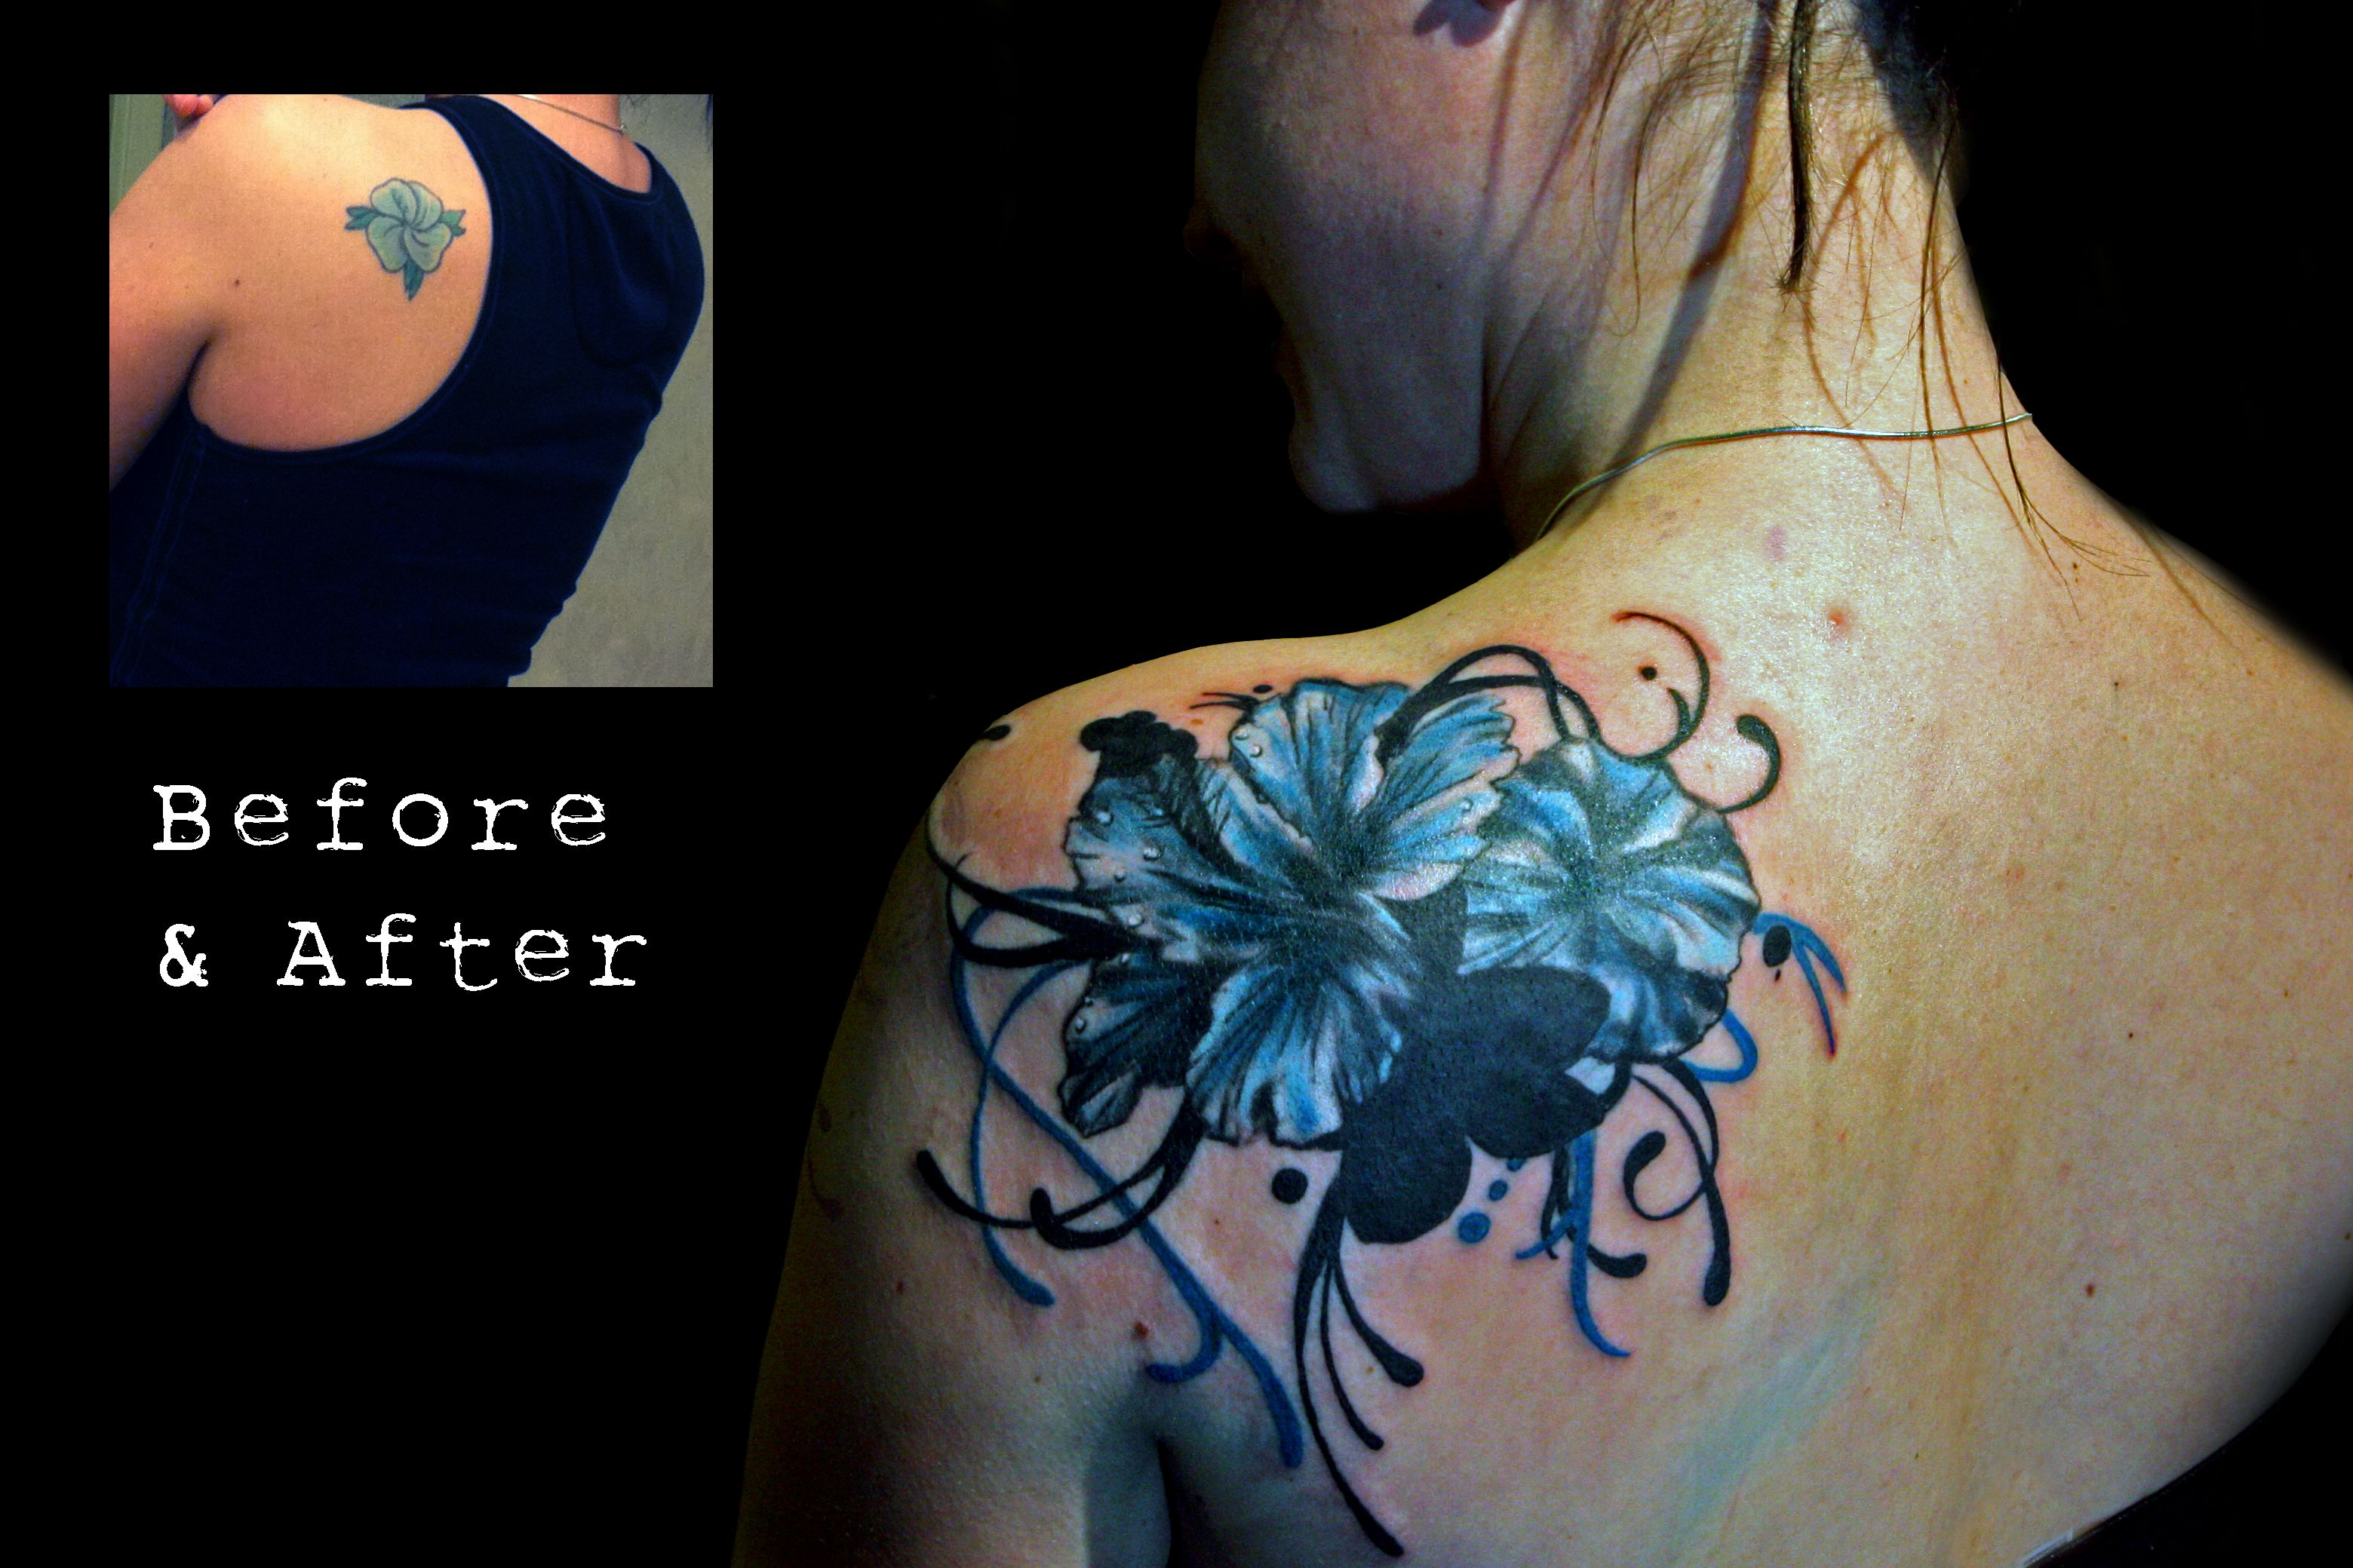 Flower cover up tattoo designs nice but not that large a lot flower cover up tattoo designs nice but not that large a lot smaller izmirmasajfo Image collections